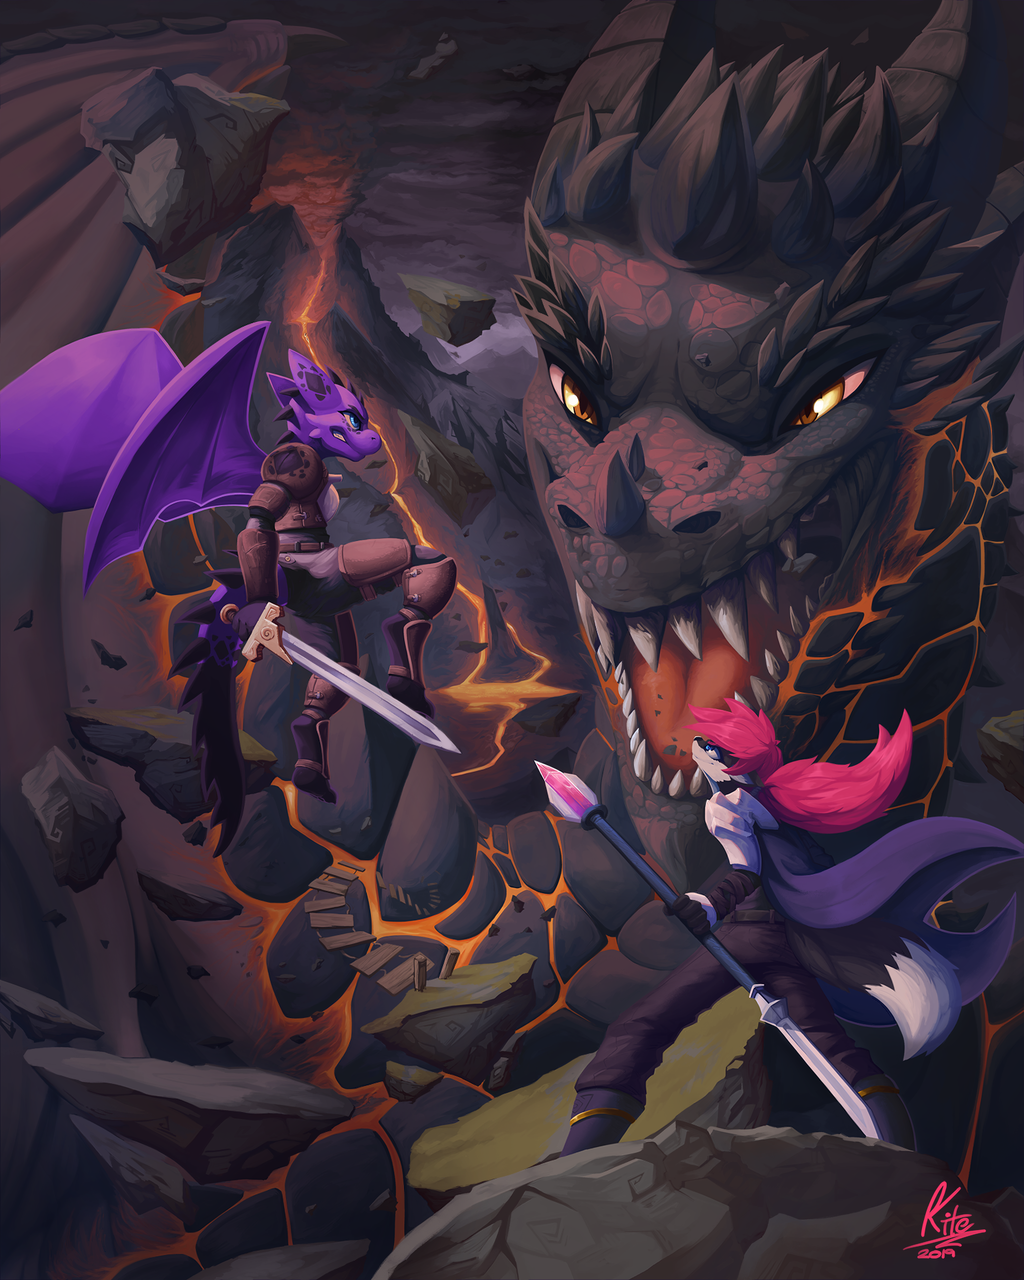 Most recent image: Draconic Rumble